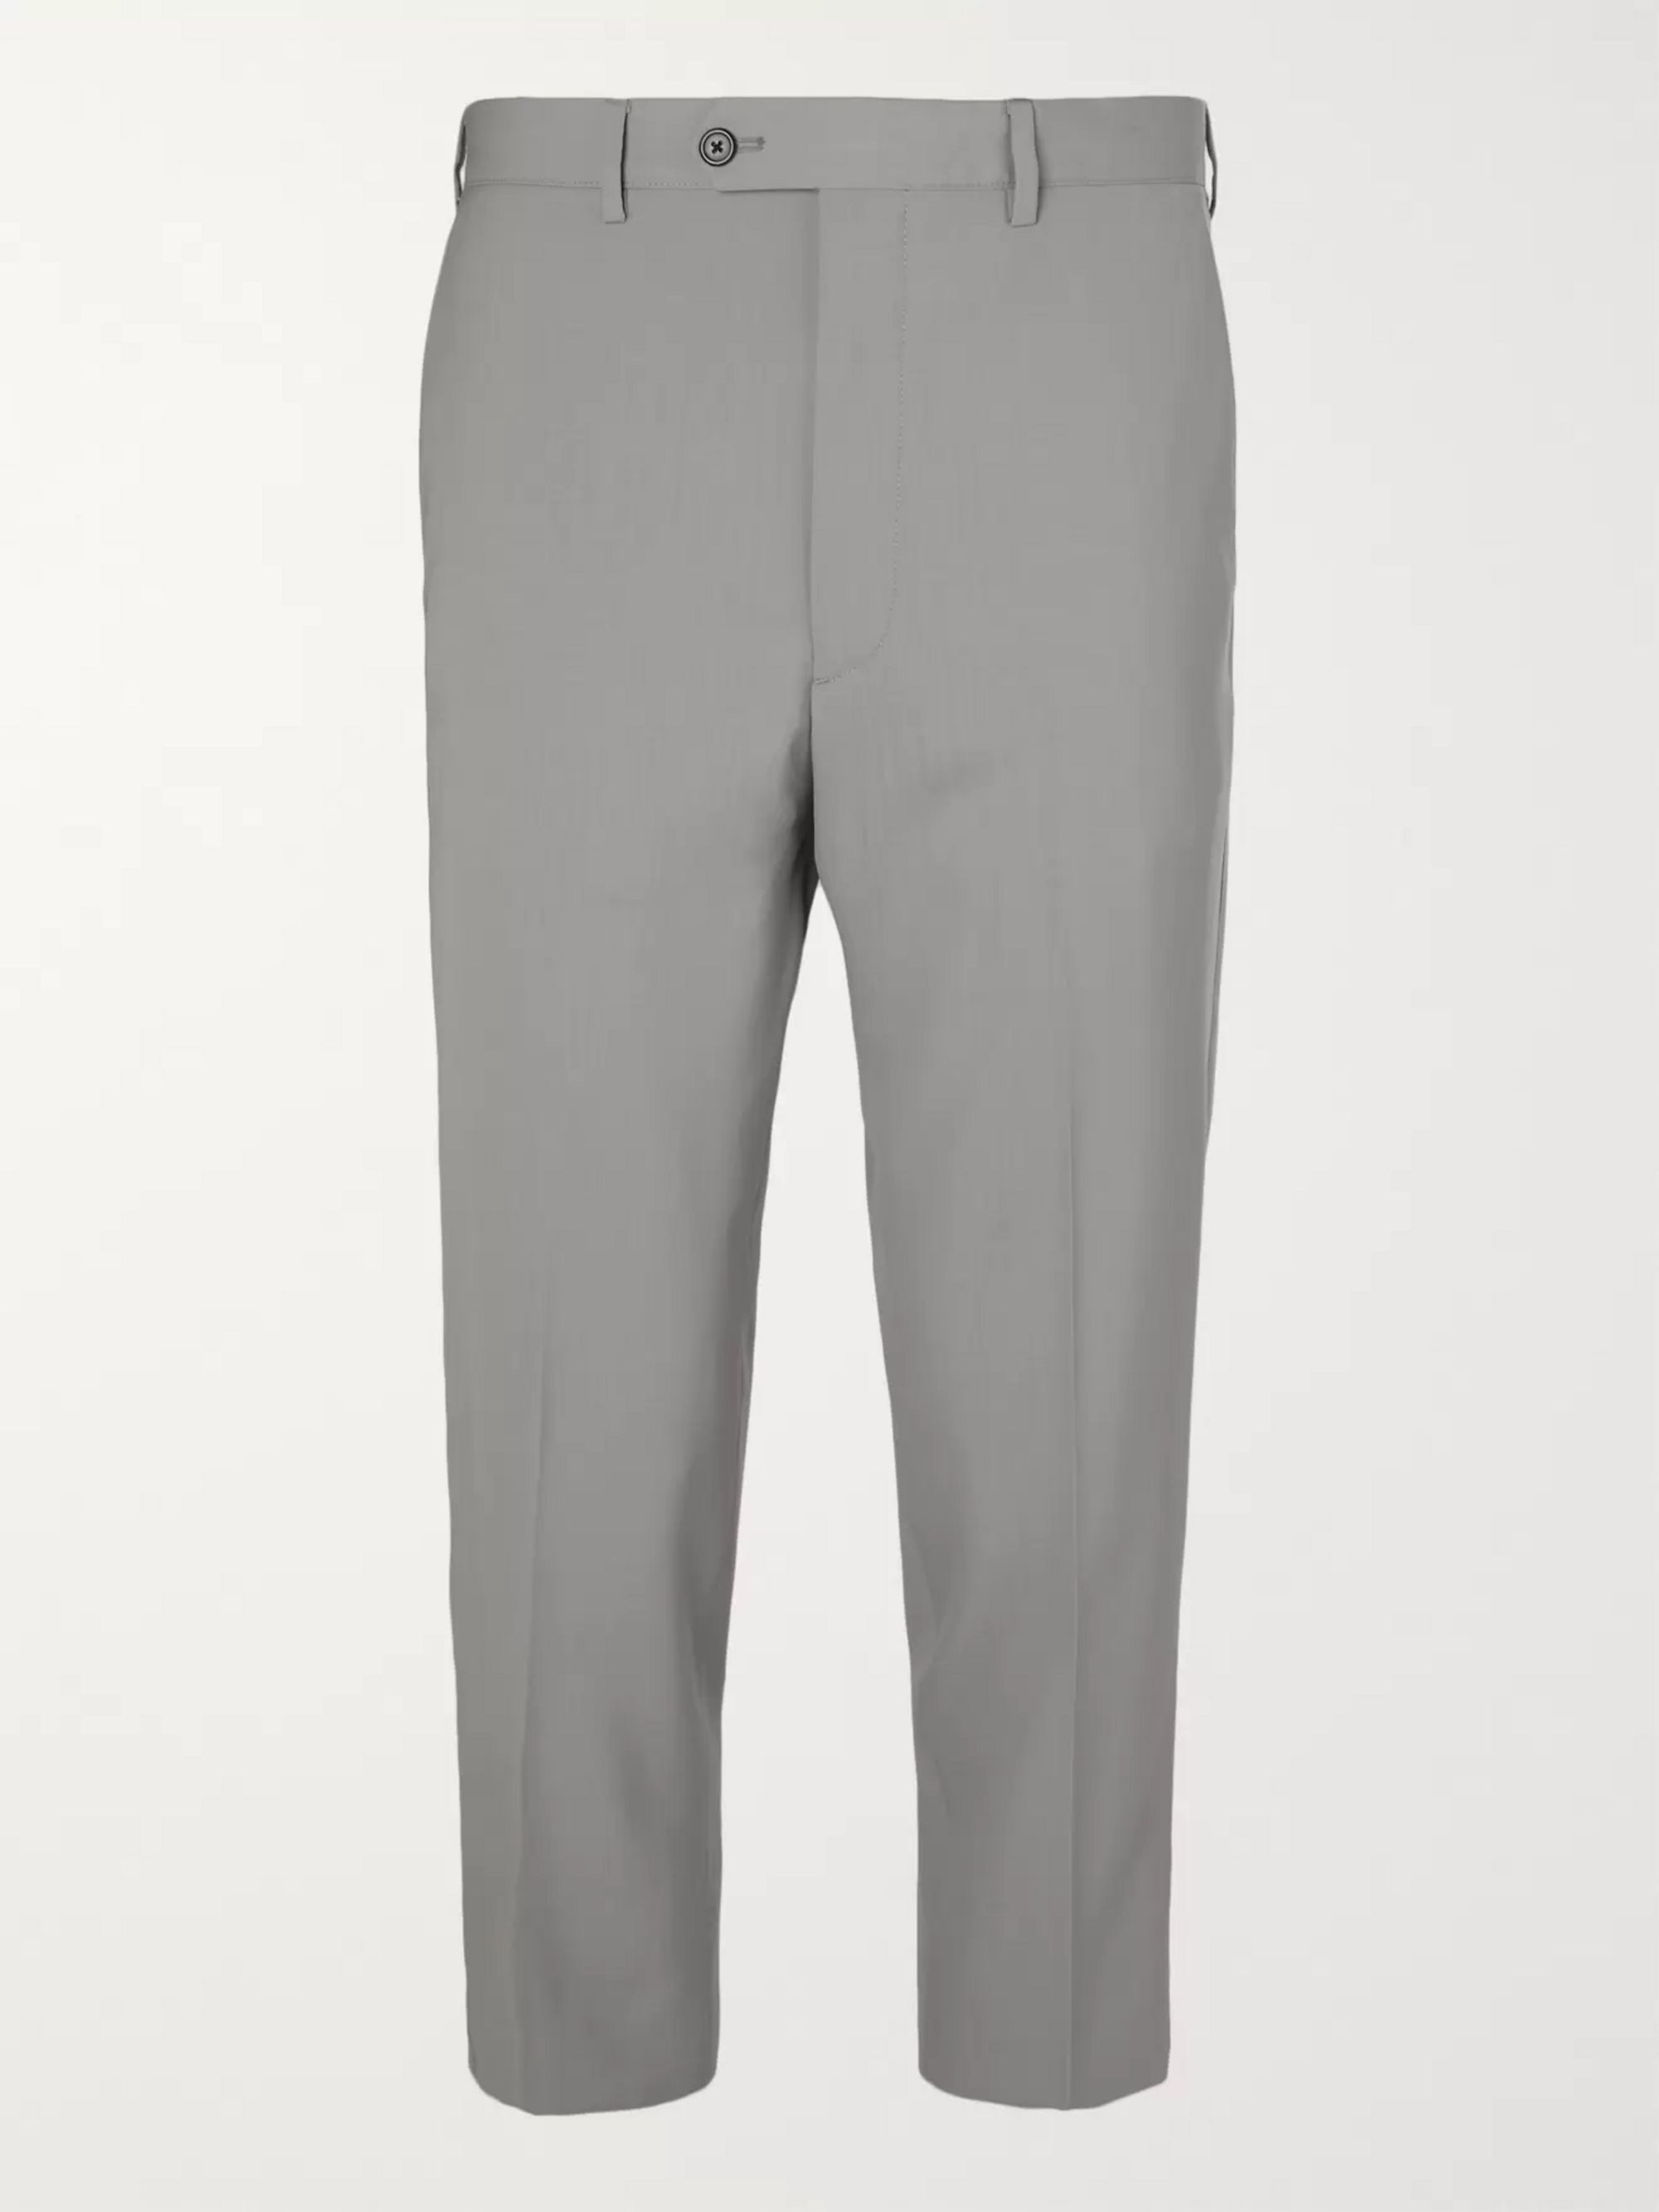 Prada Cropped Virgin Wool Trousers